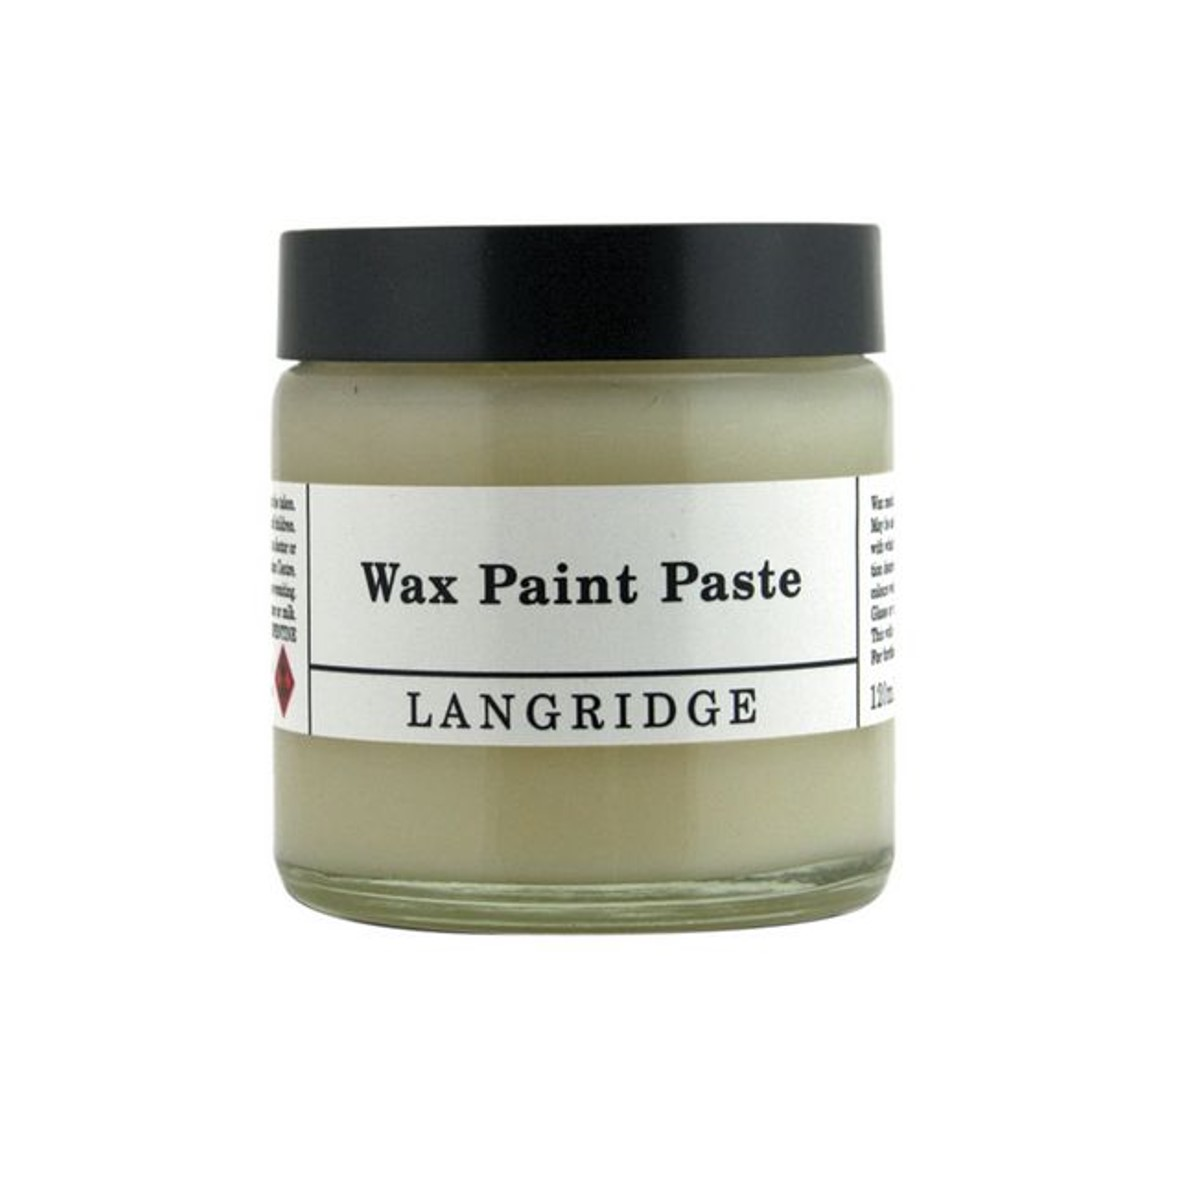 Wax Painting Paste